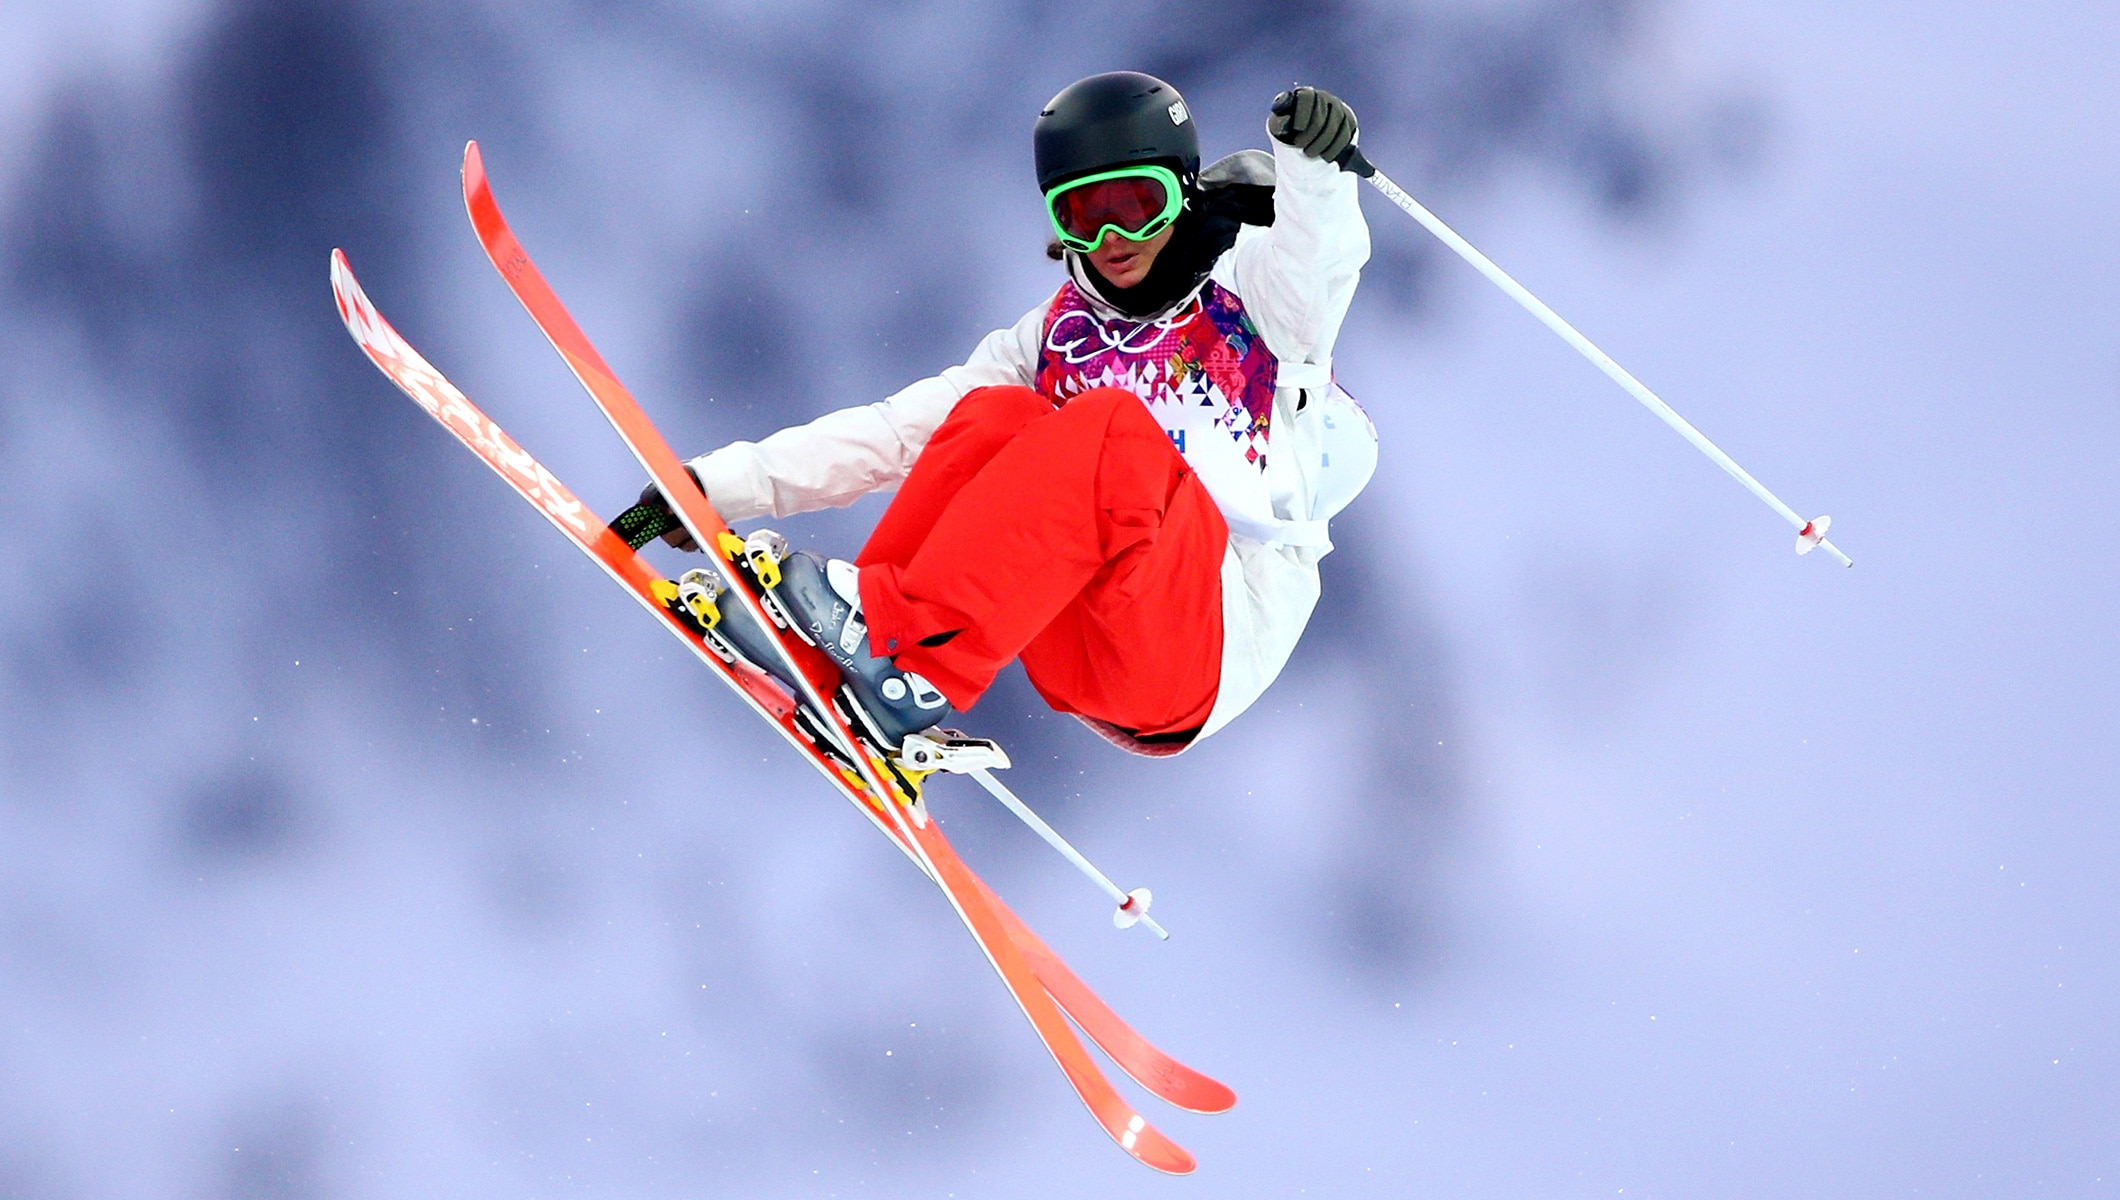 Freestyle Skiing At The 2020 Olympic Winter Games.Freestyle Skiing Winter Olympic Sport